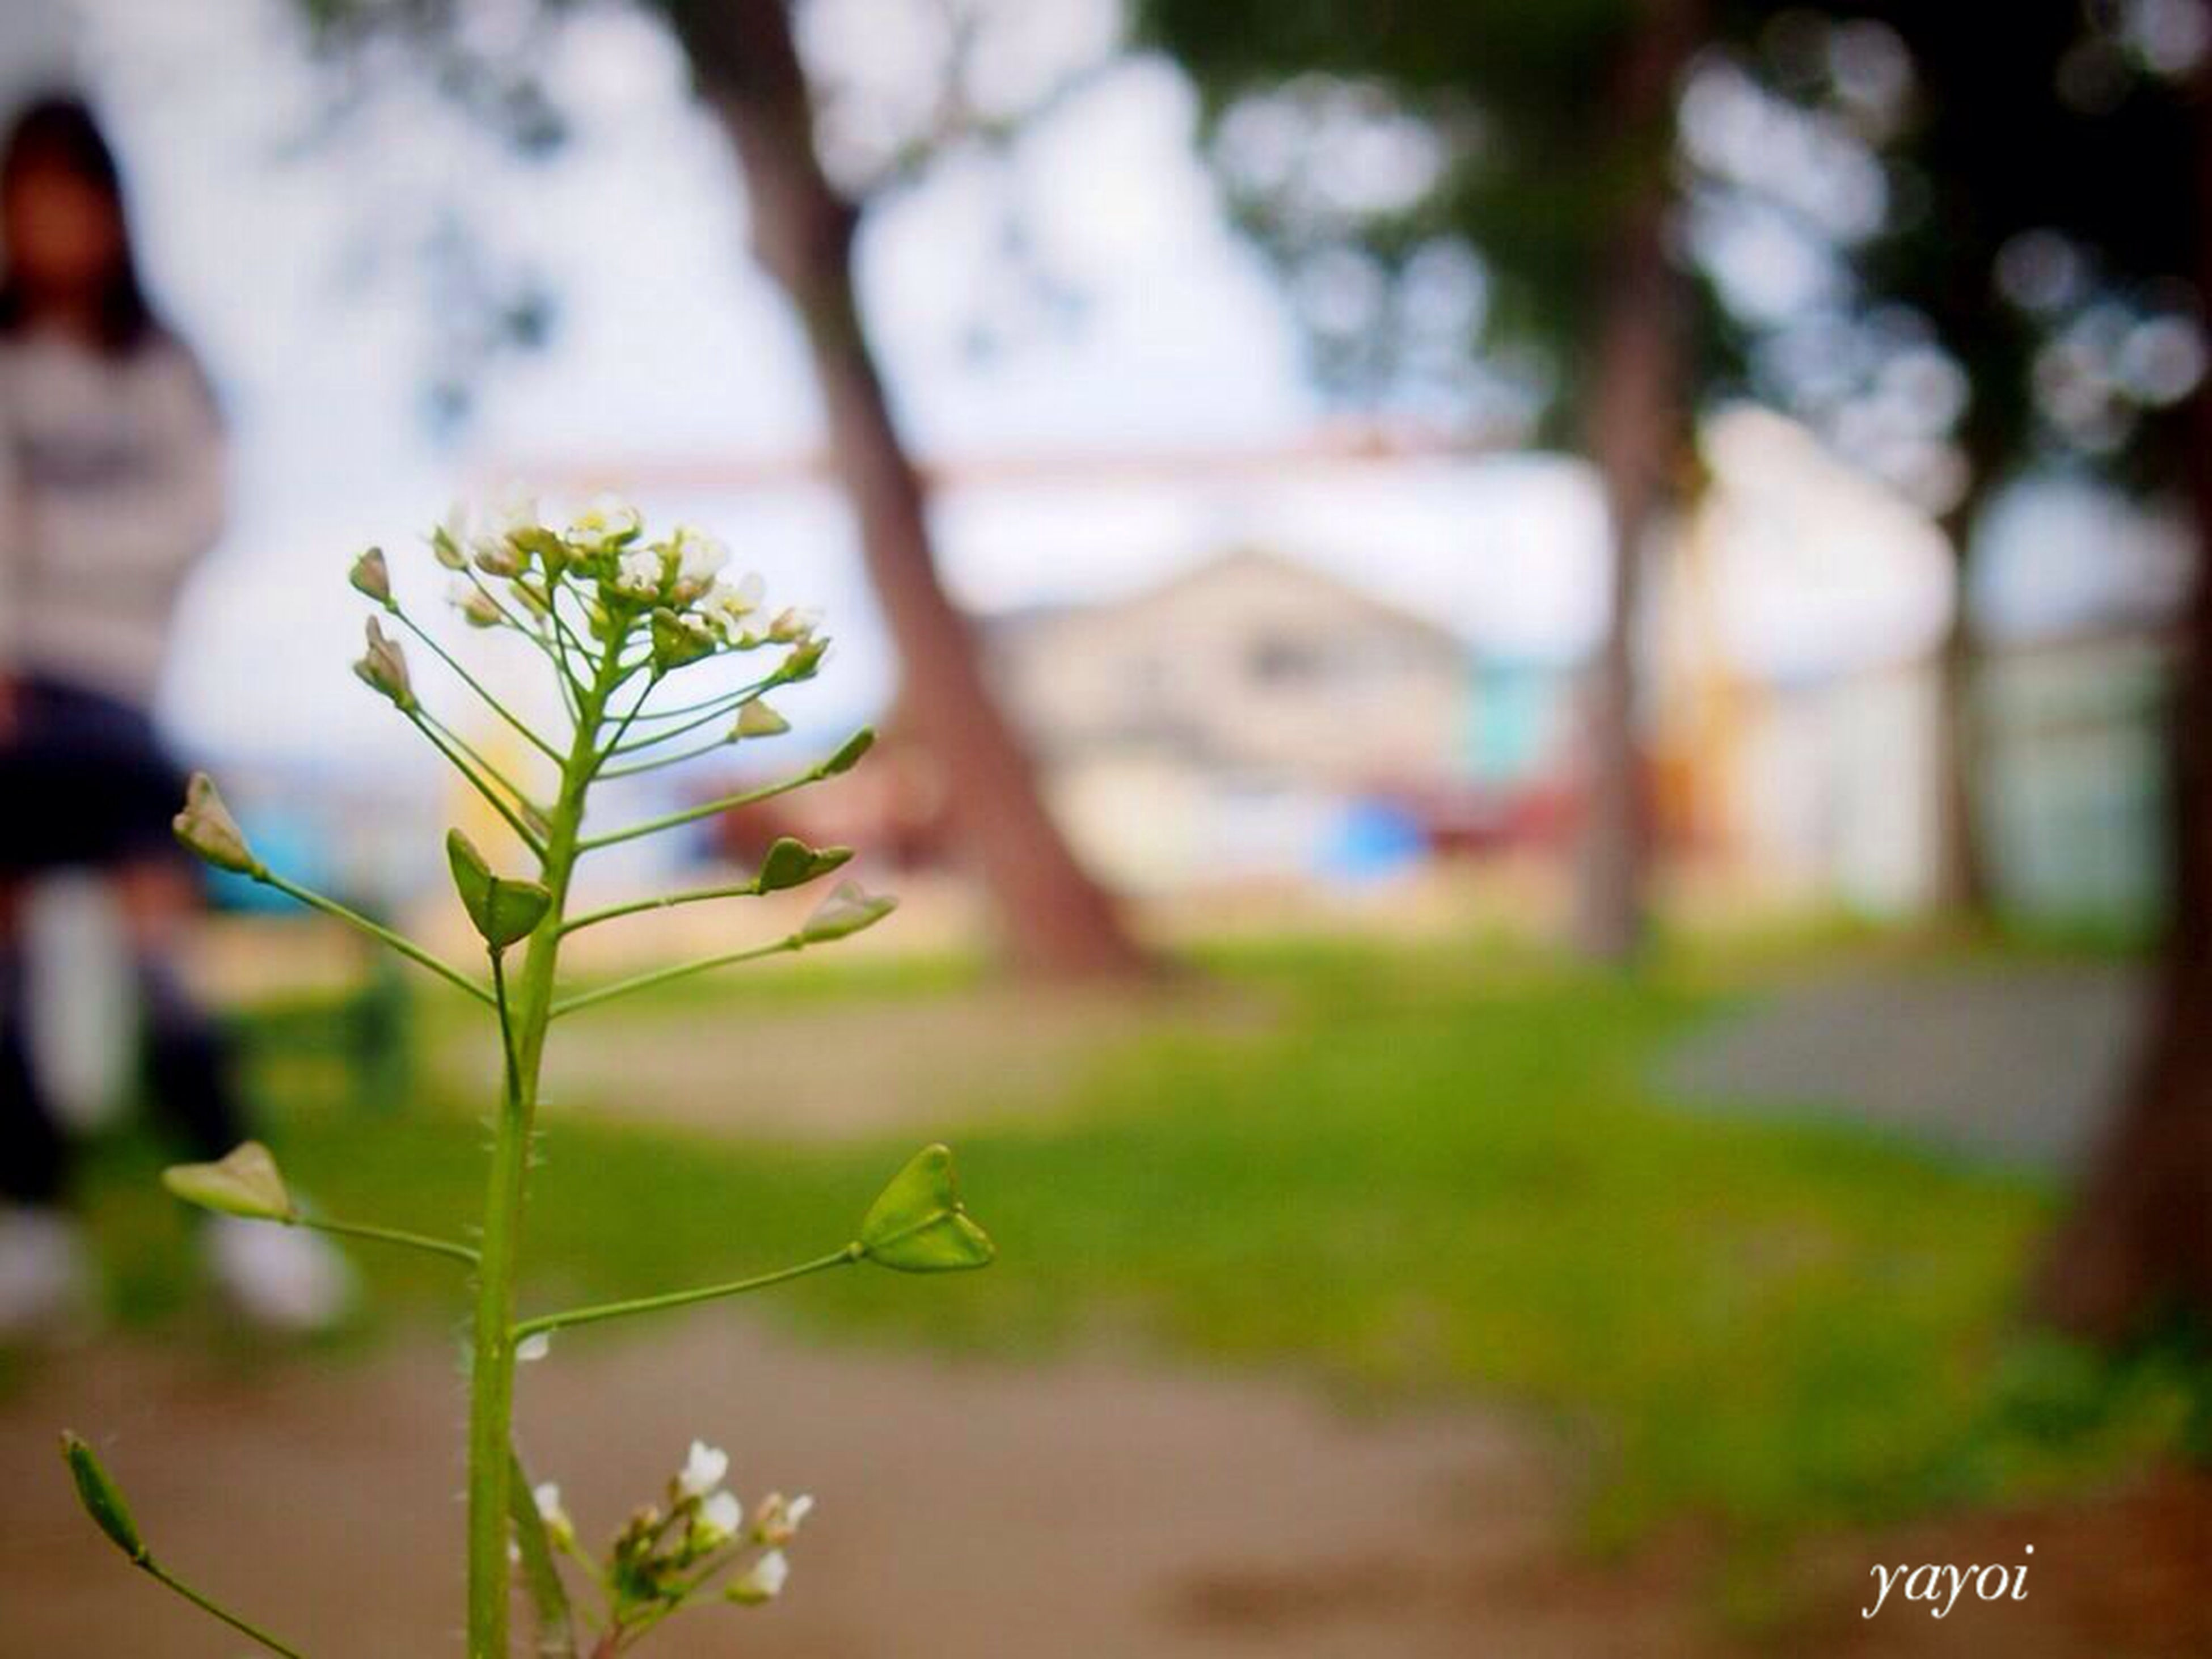 focus on foreground, plant, growth, selective focus, built structure, building exterior, architecture, close-up, leaf, tree, day, outdoors, nature, flower, branch, no people, house, sunlight, front or back yard, green color